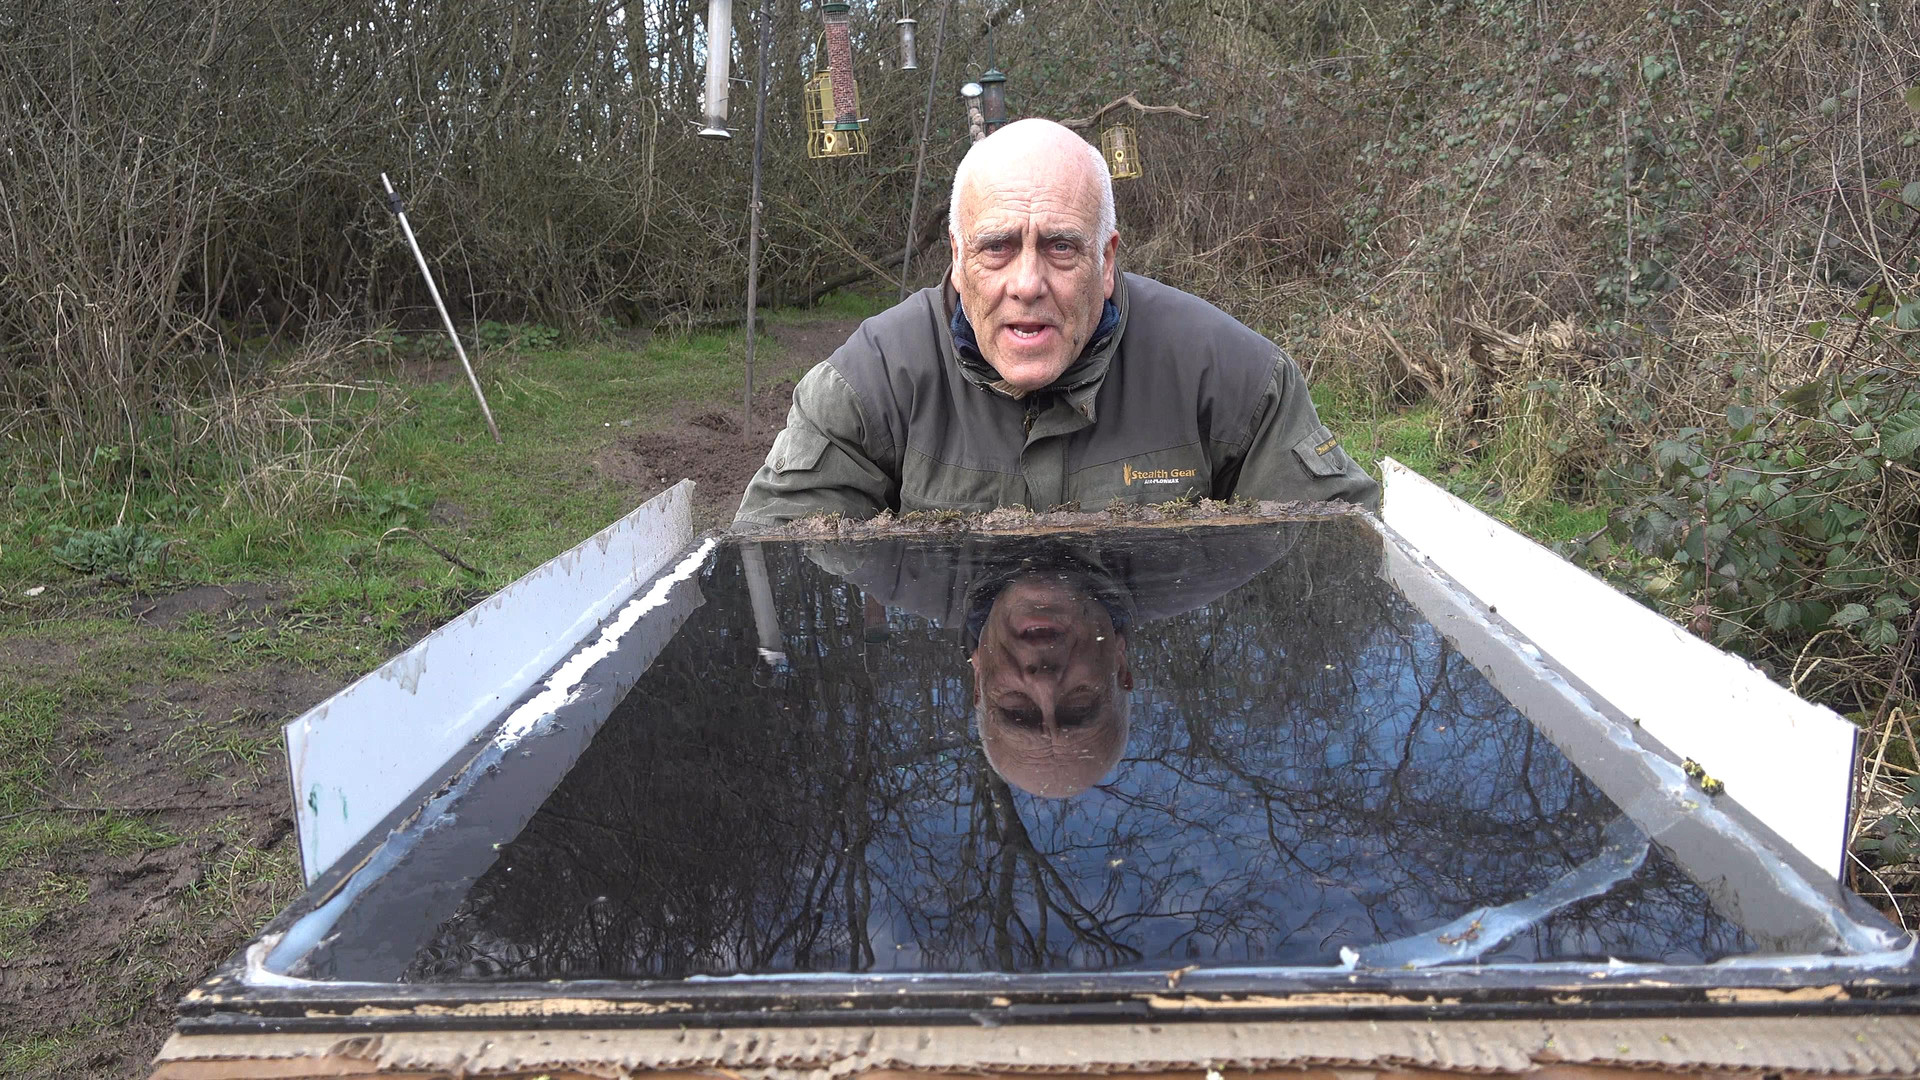 Reflection drinking pool